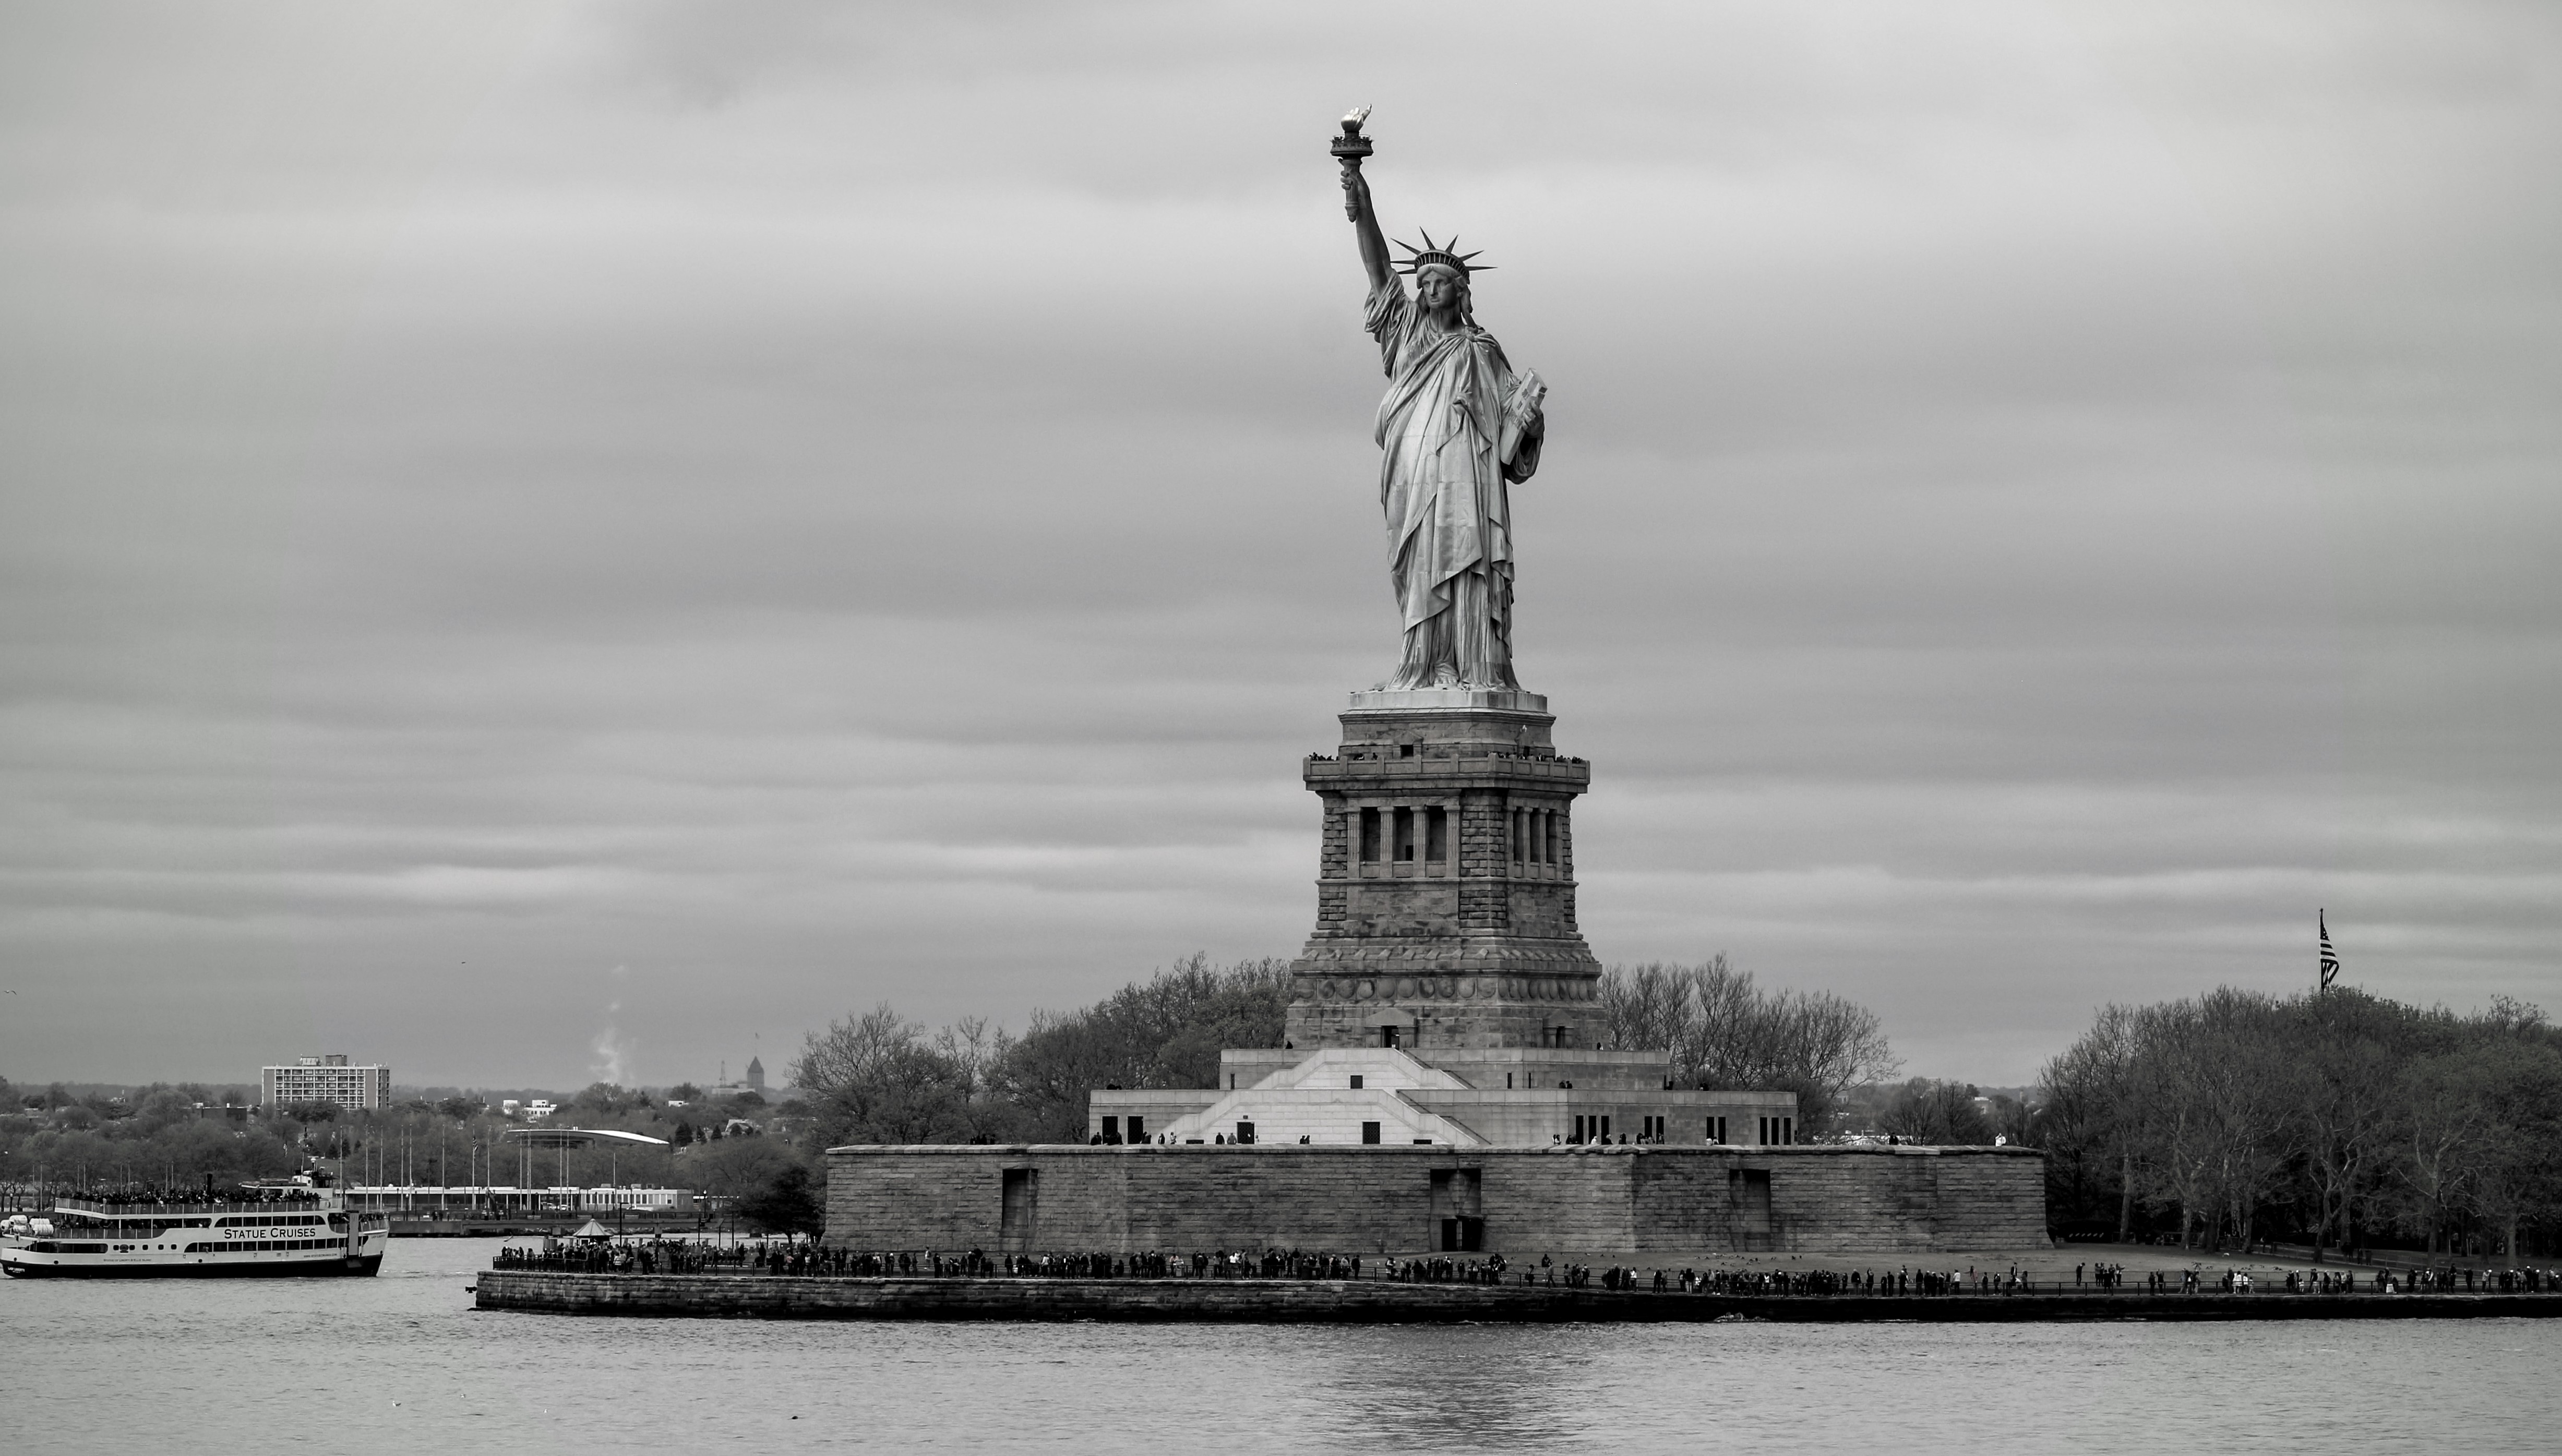 One of my pictures of the Statue of Liberty from the Staten Island Ferry.